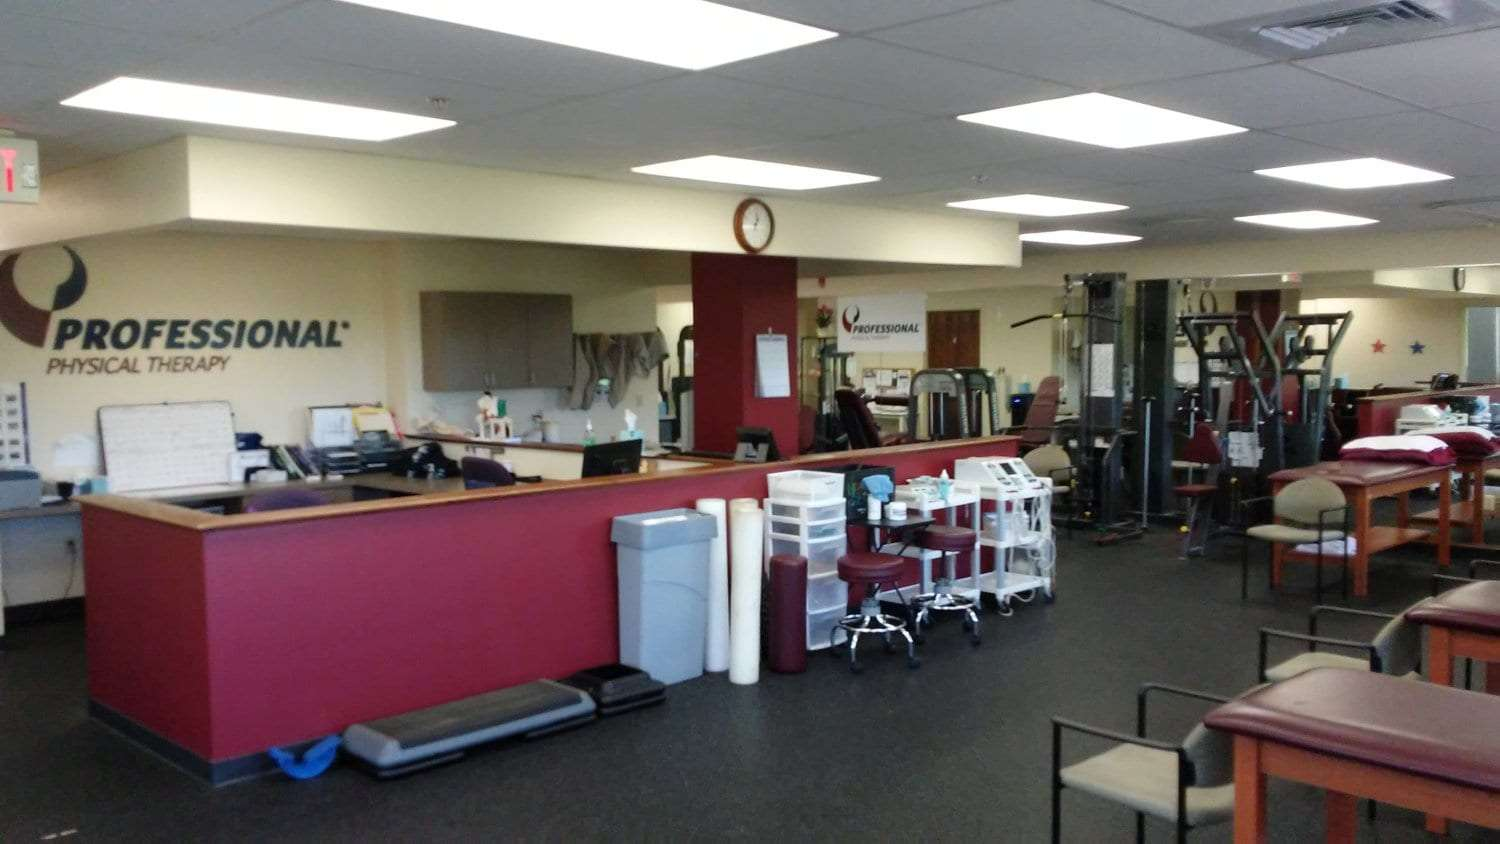 Here is a photo of the front desk at our physical therapy clinic in Newton, New Jersey.